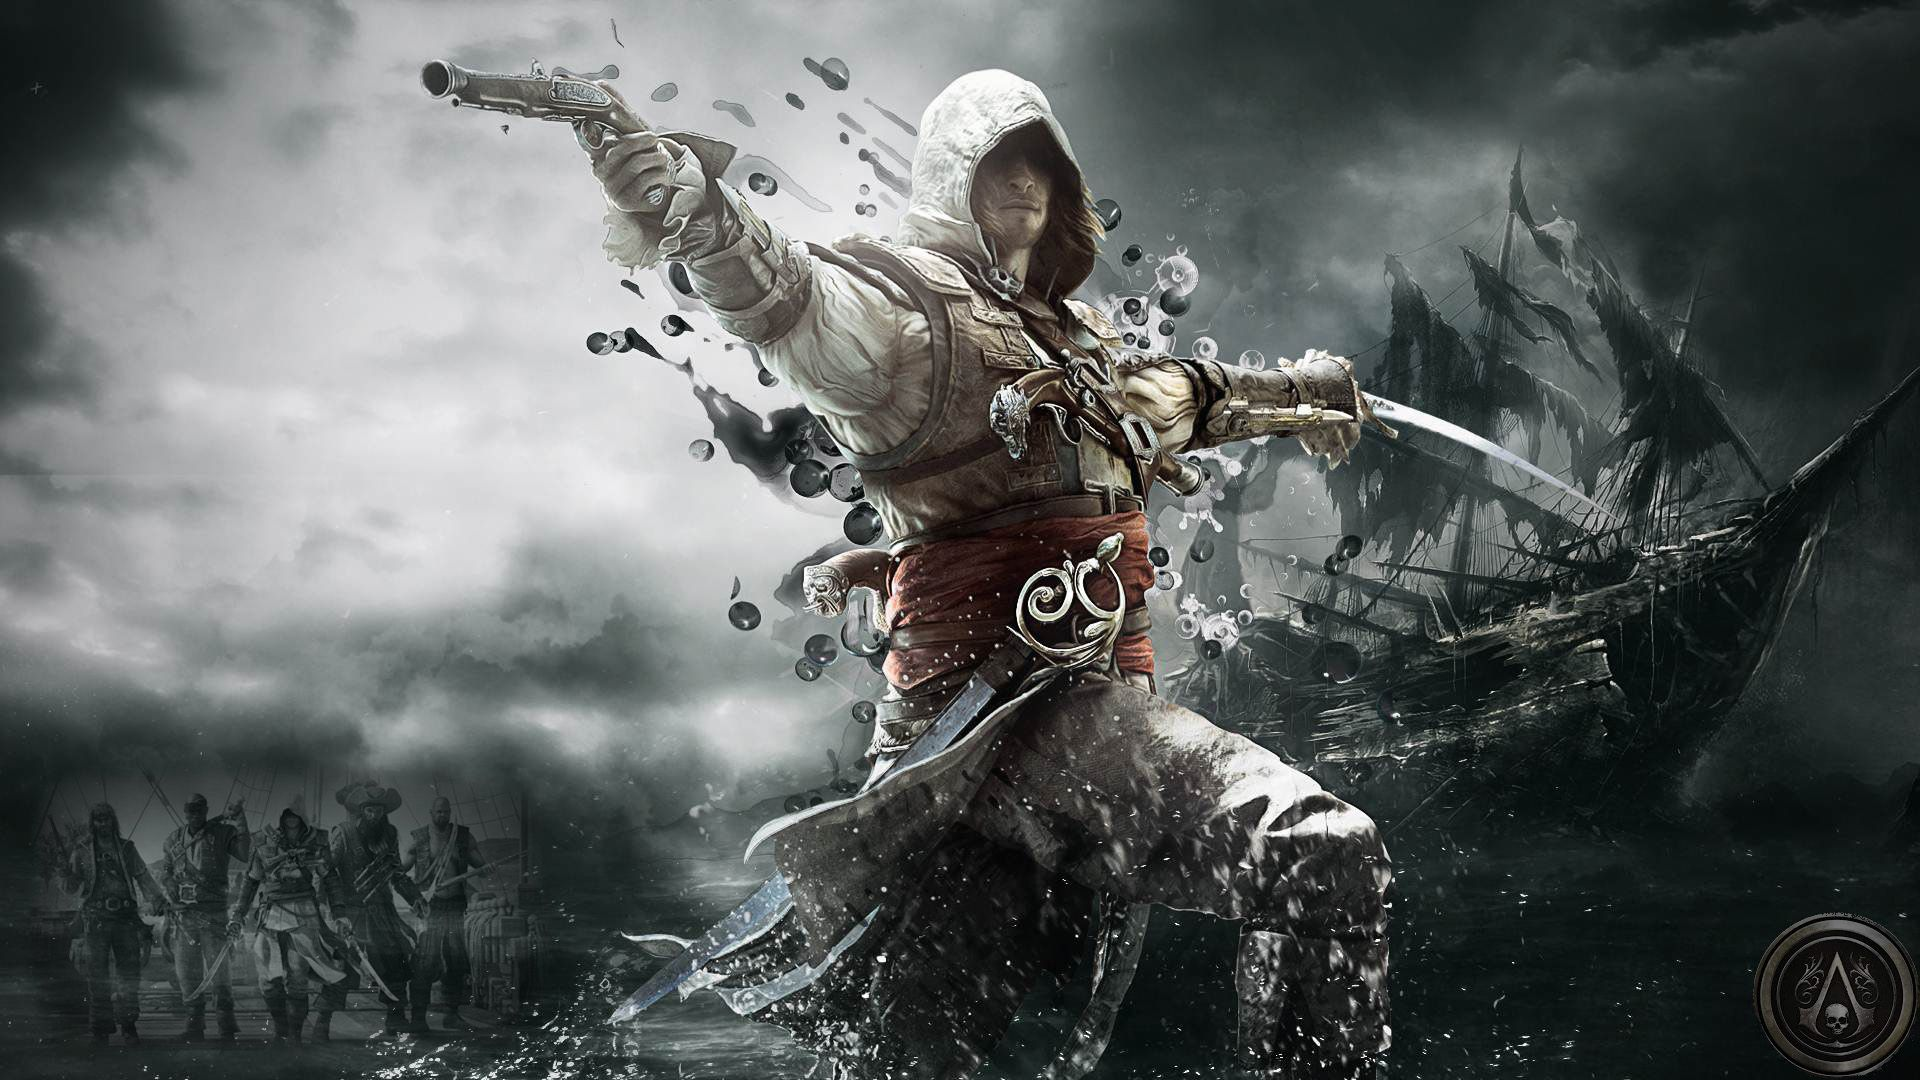 Photoshop Projects Assassins Creed Black Flag Assassin S Creed